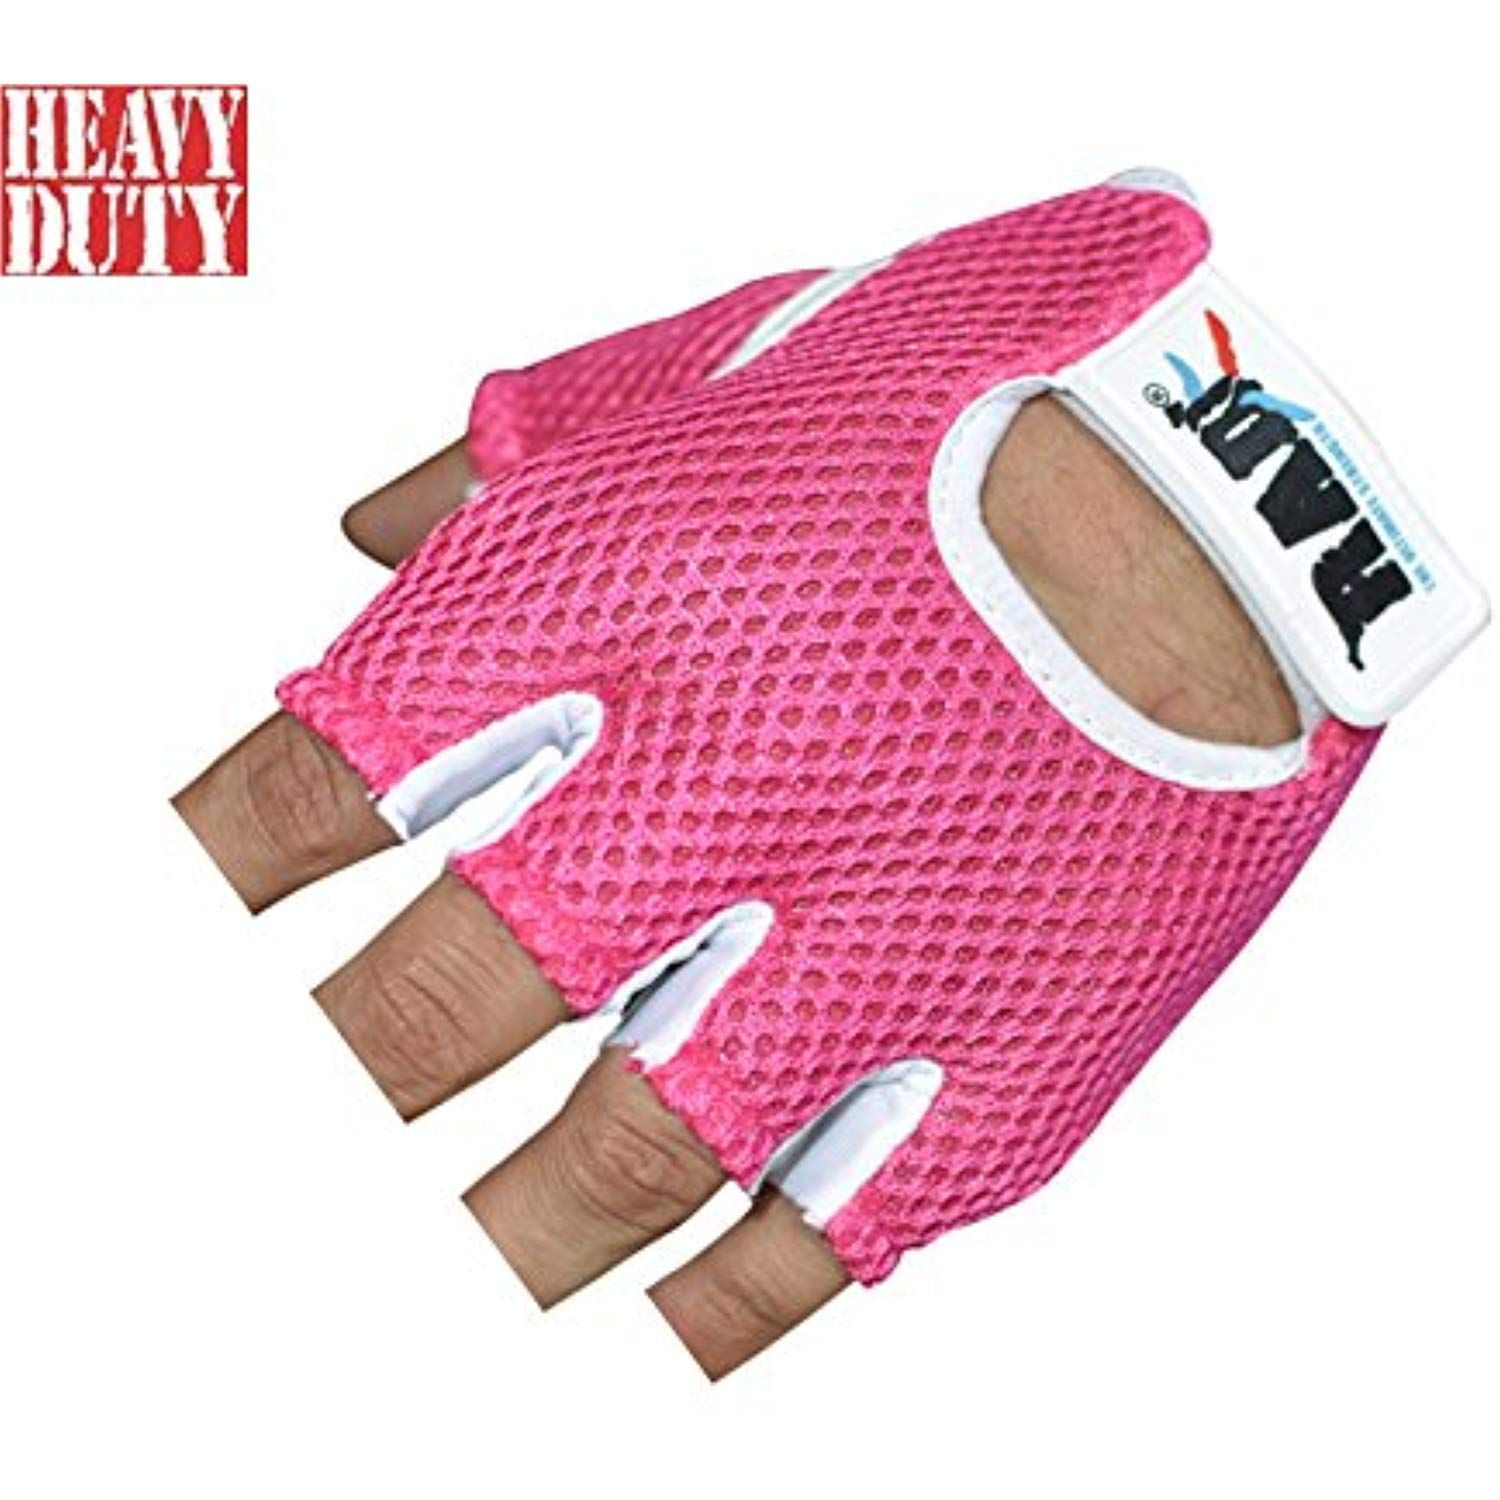 Leather Weight Lifting Gloves Gym Training Fitness Exercise Bodybuilding Workout